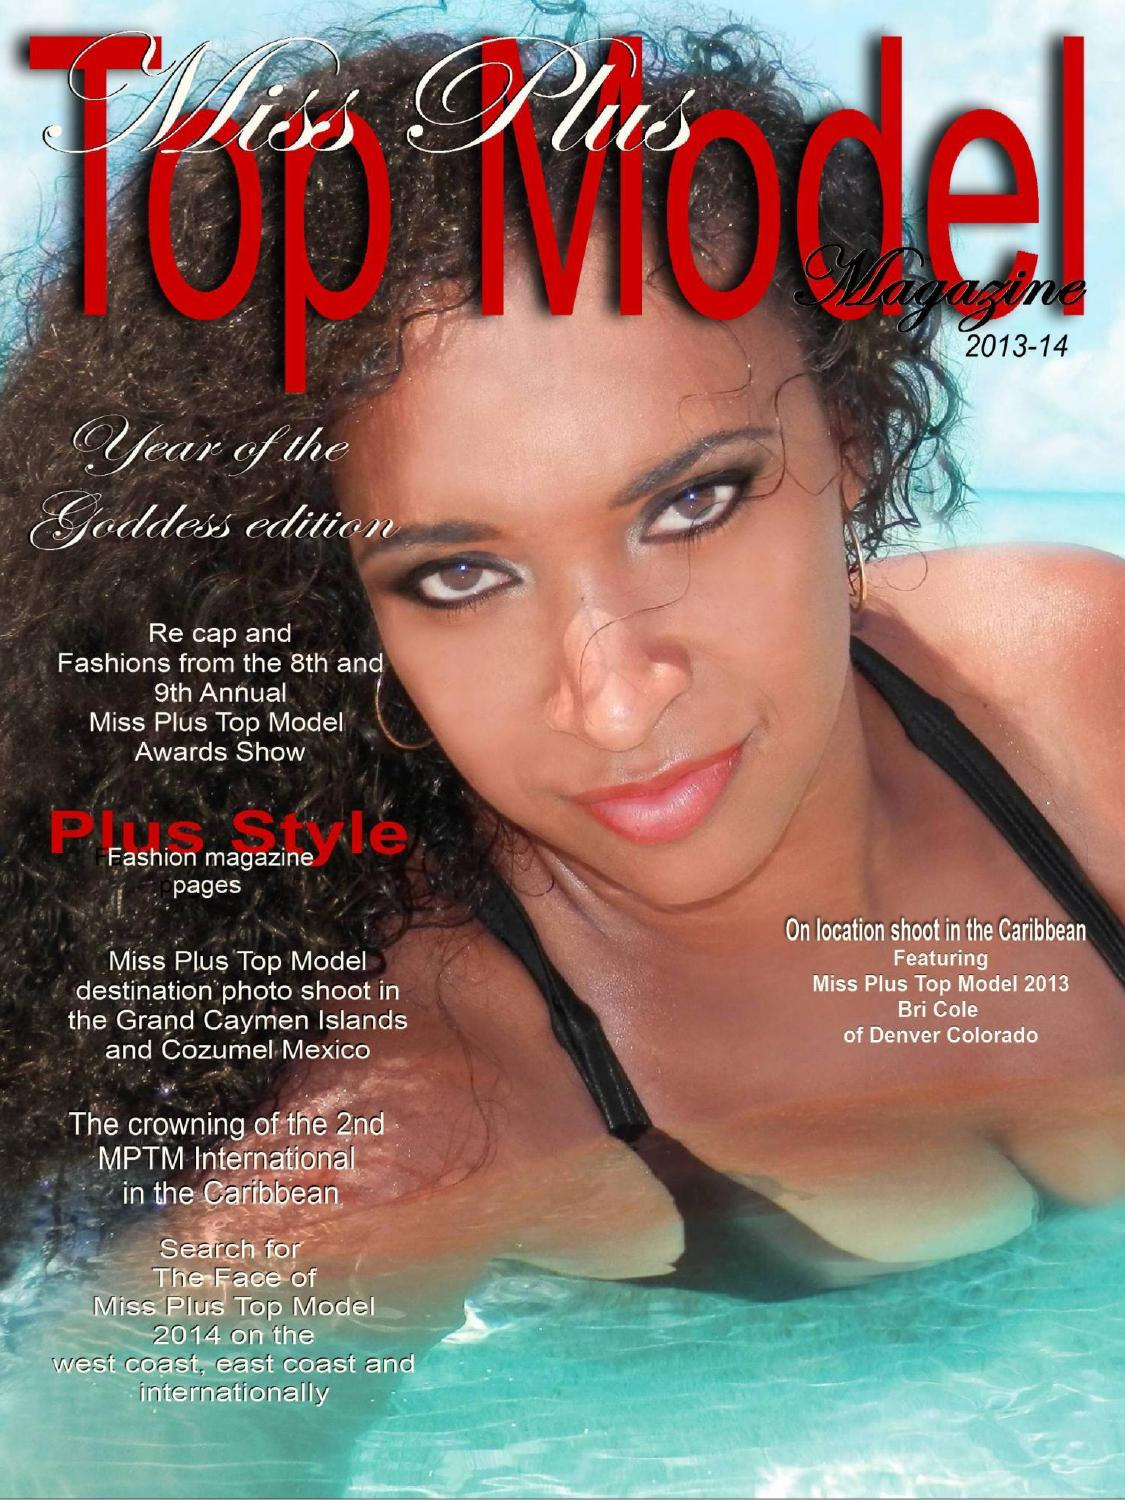 MISS PLUS TOP MODEL MAGAZINE online by MISS PLUS TOP MODEL MAGAZINE ONLINE 2013-14 - issuu